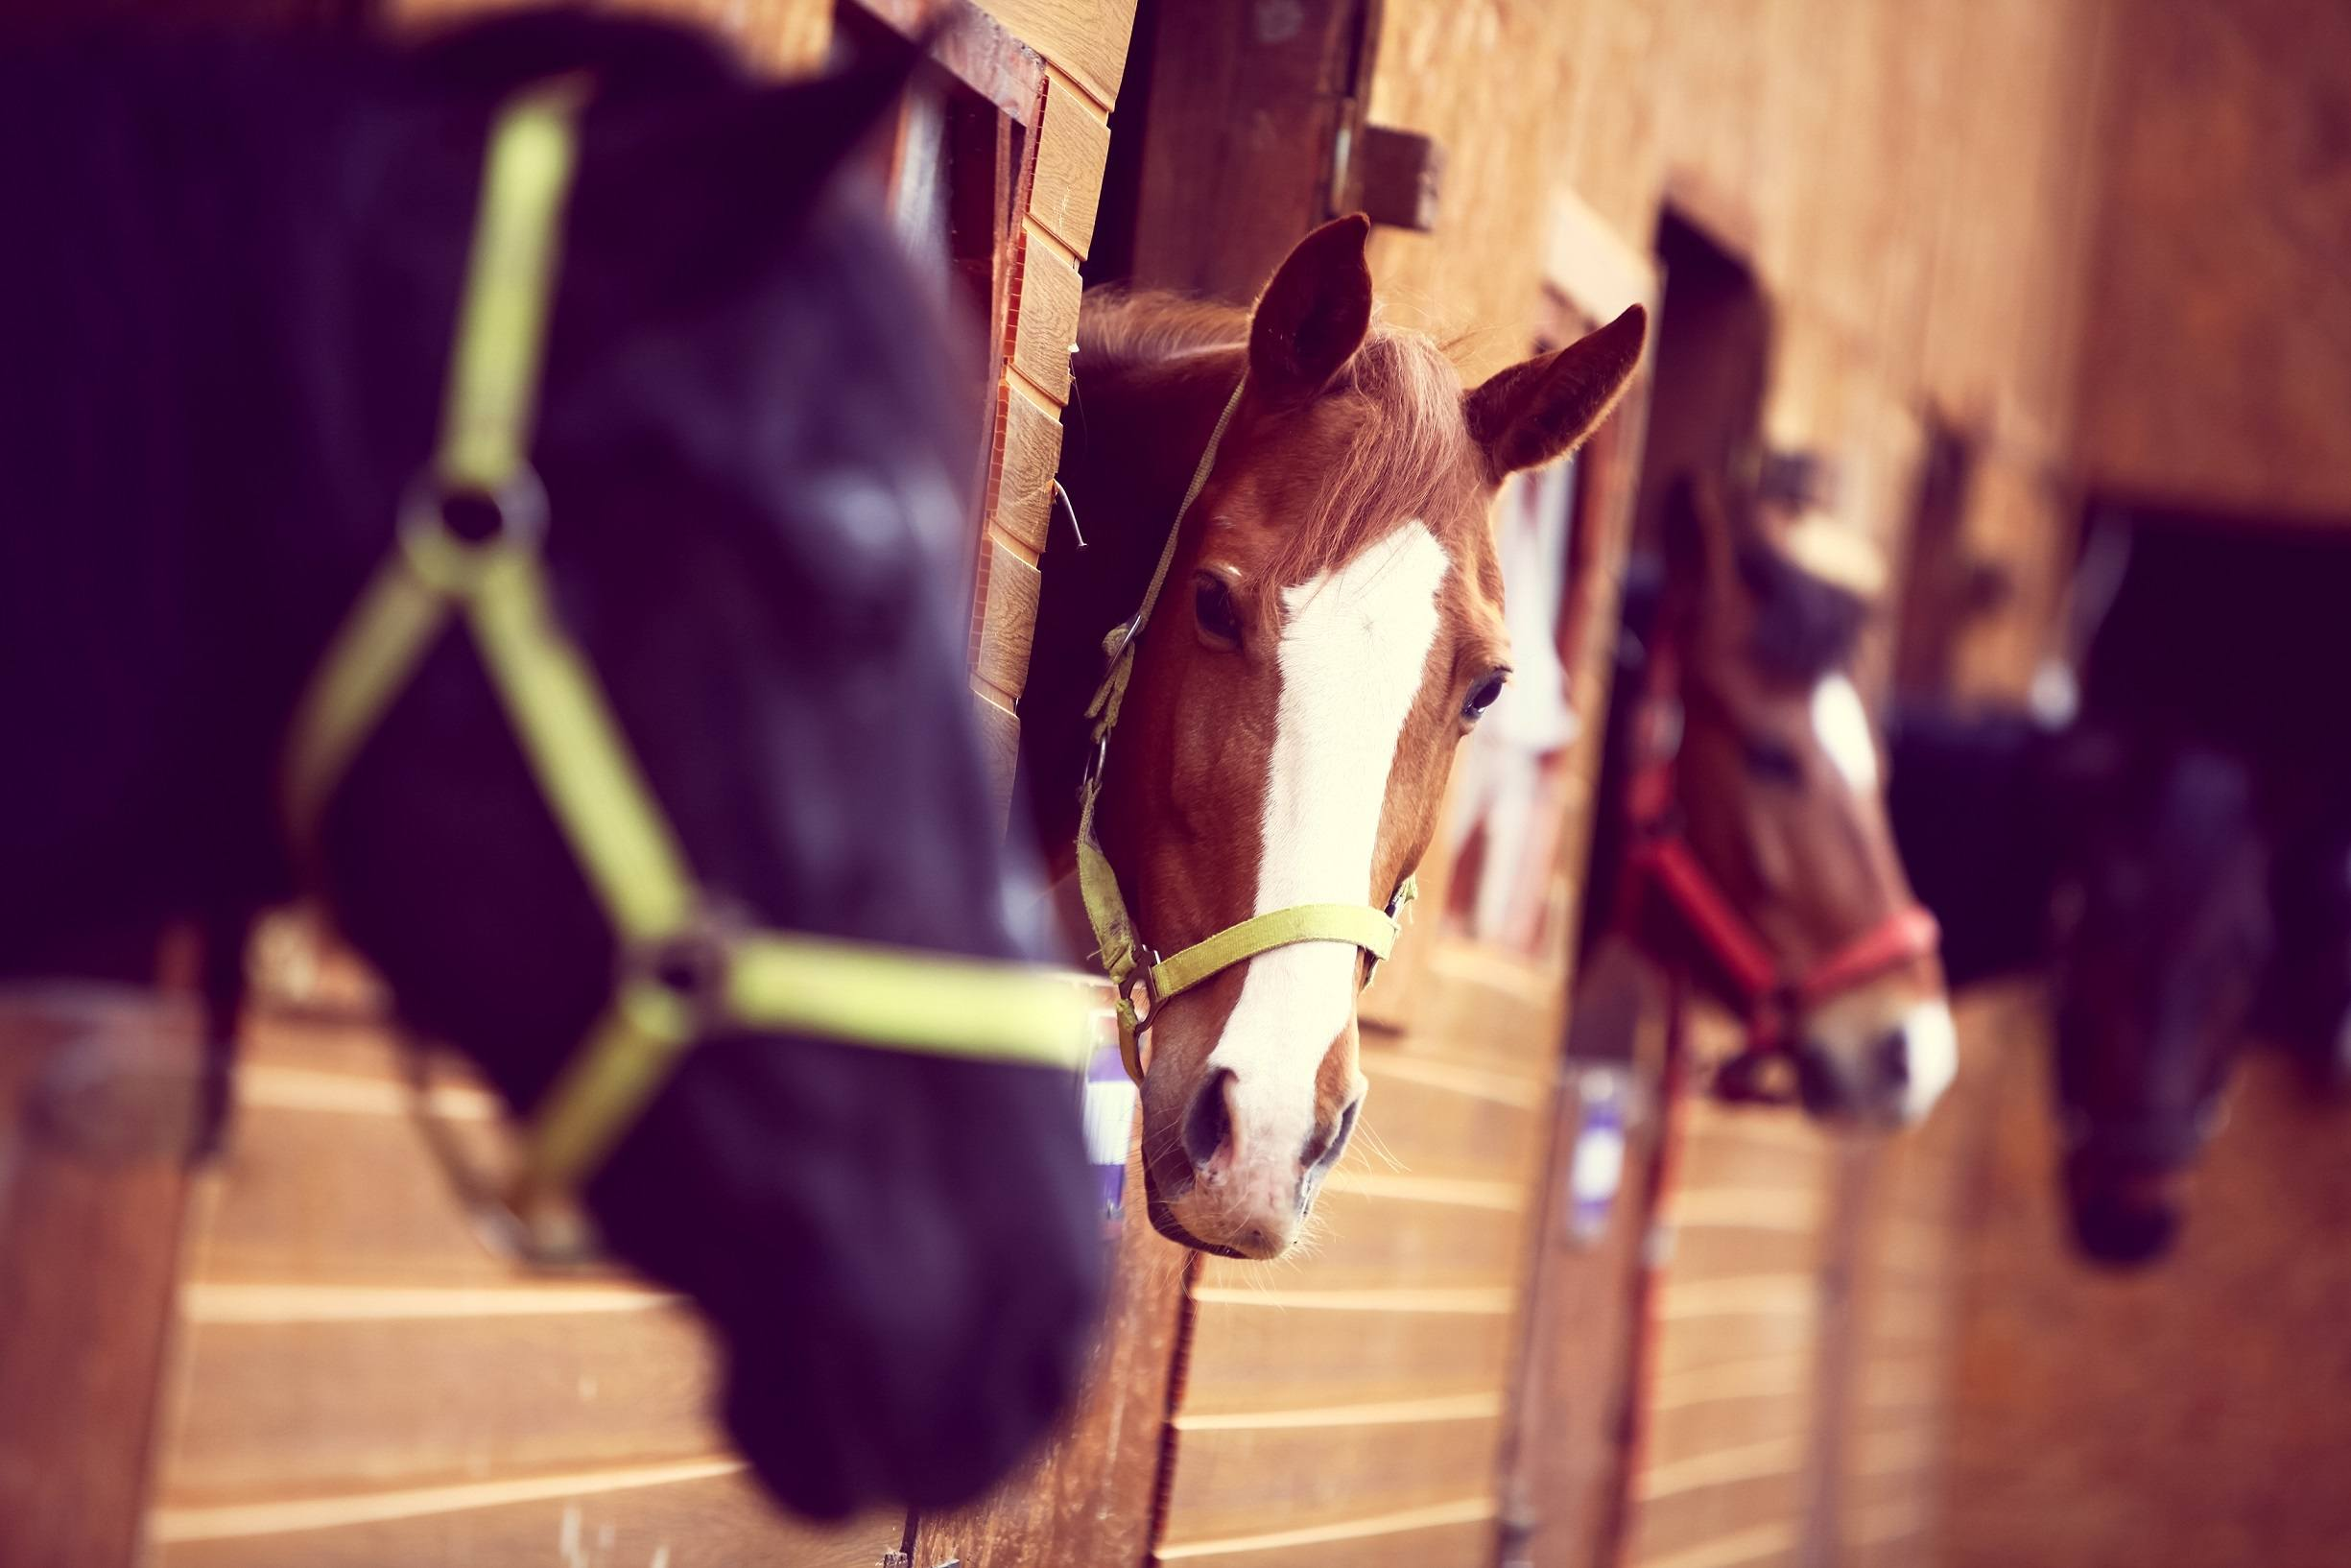 Horses in a stable